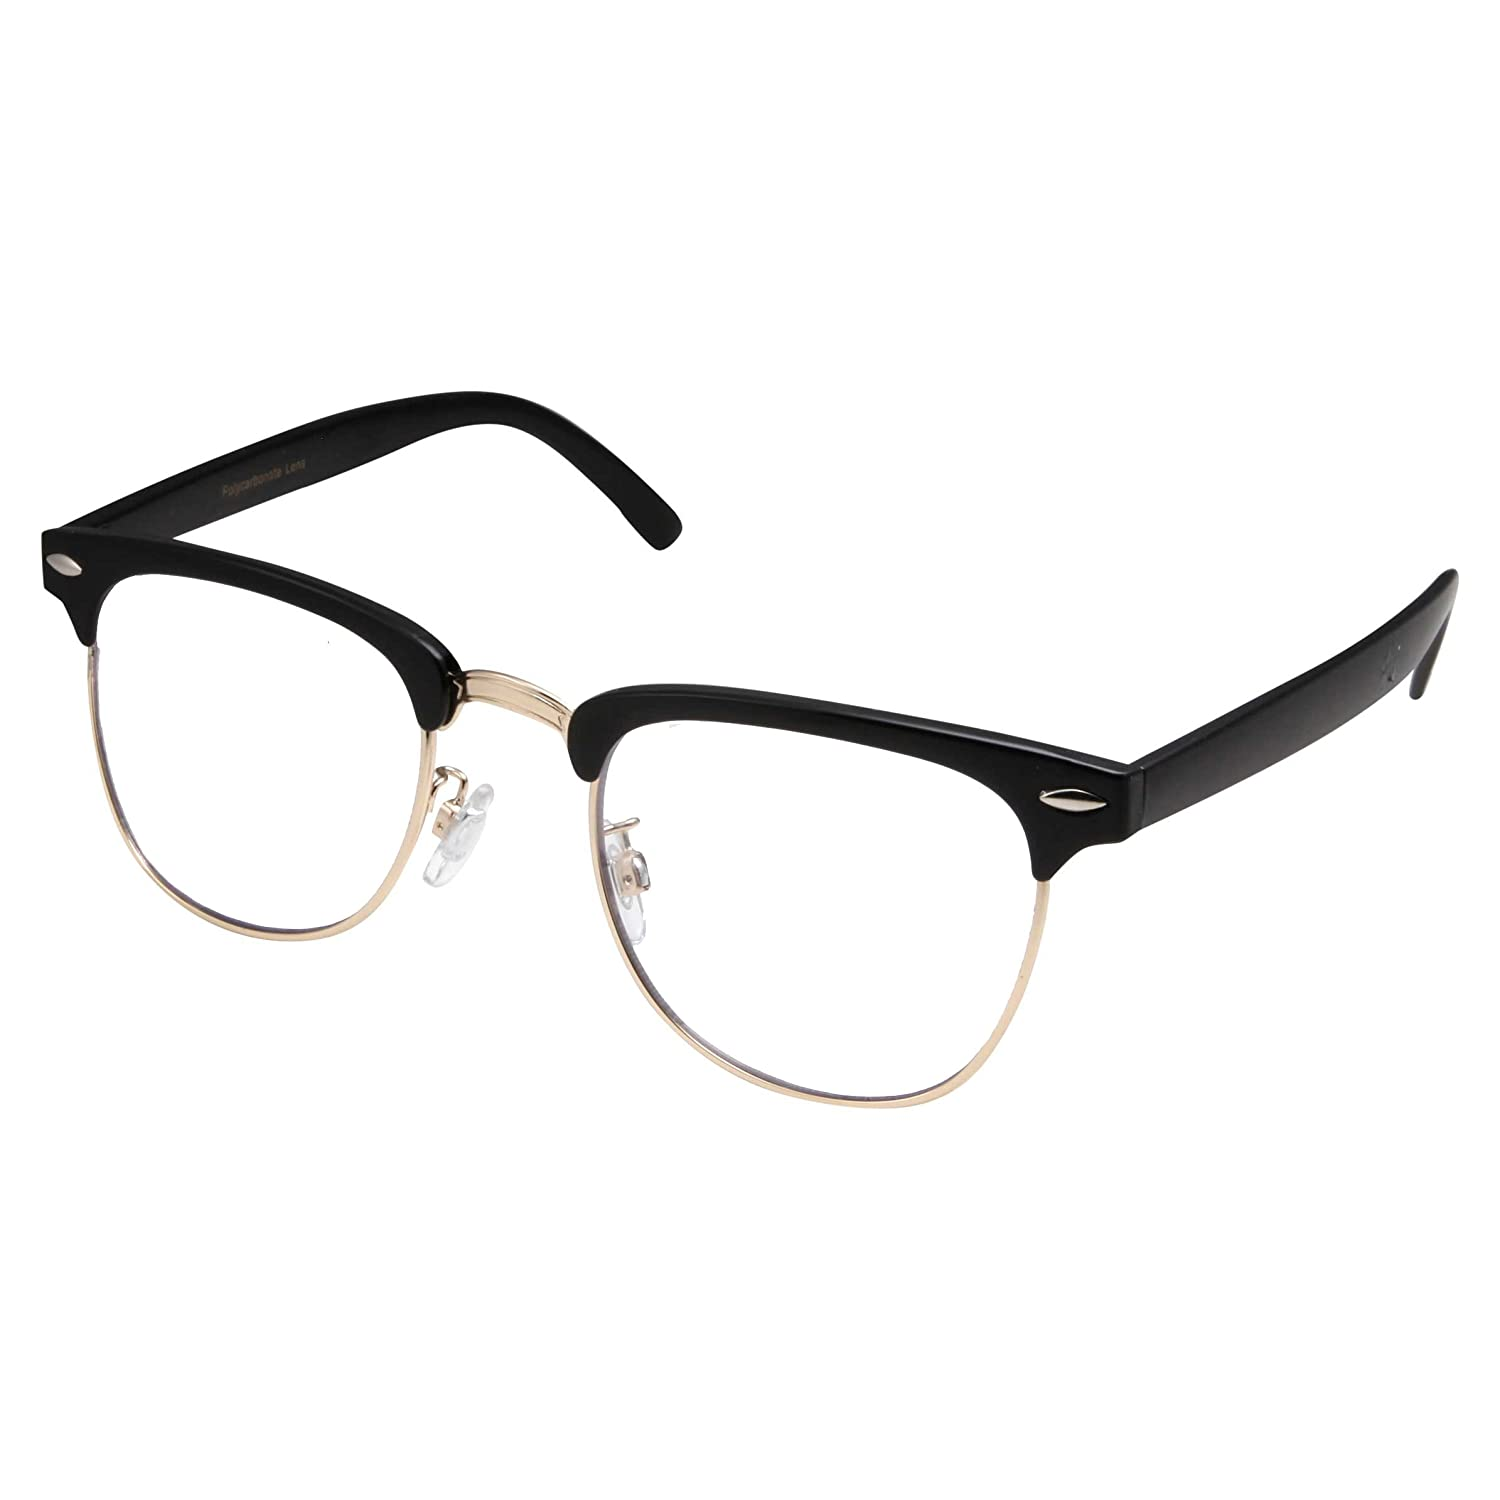 4a91d4efb87 Amazon.com  grinderPUNCH - Mens Non Prescription Clear Lens Glasses Black  Gold  Clothing